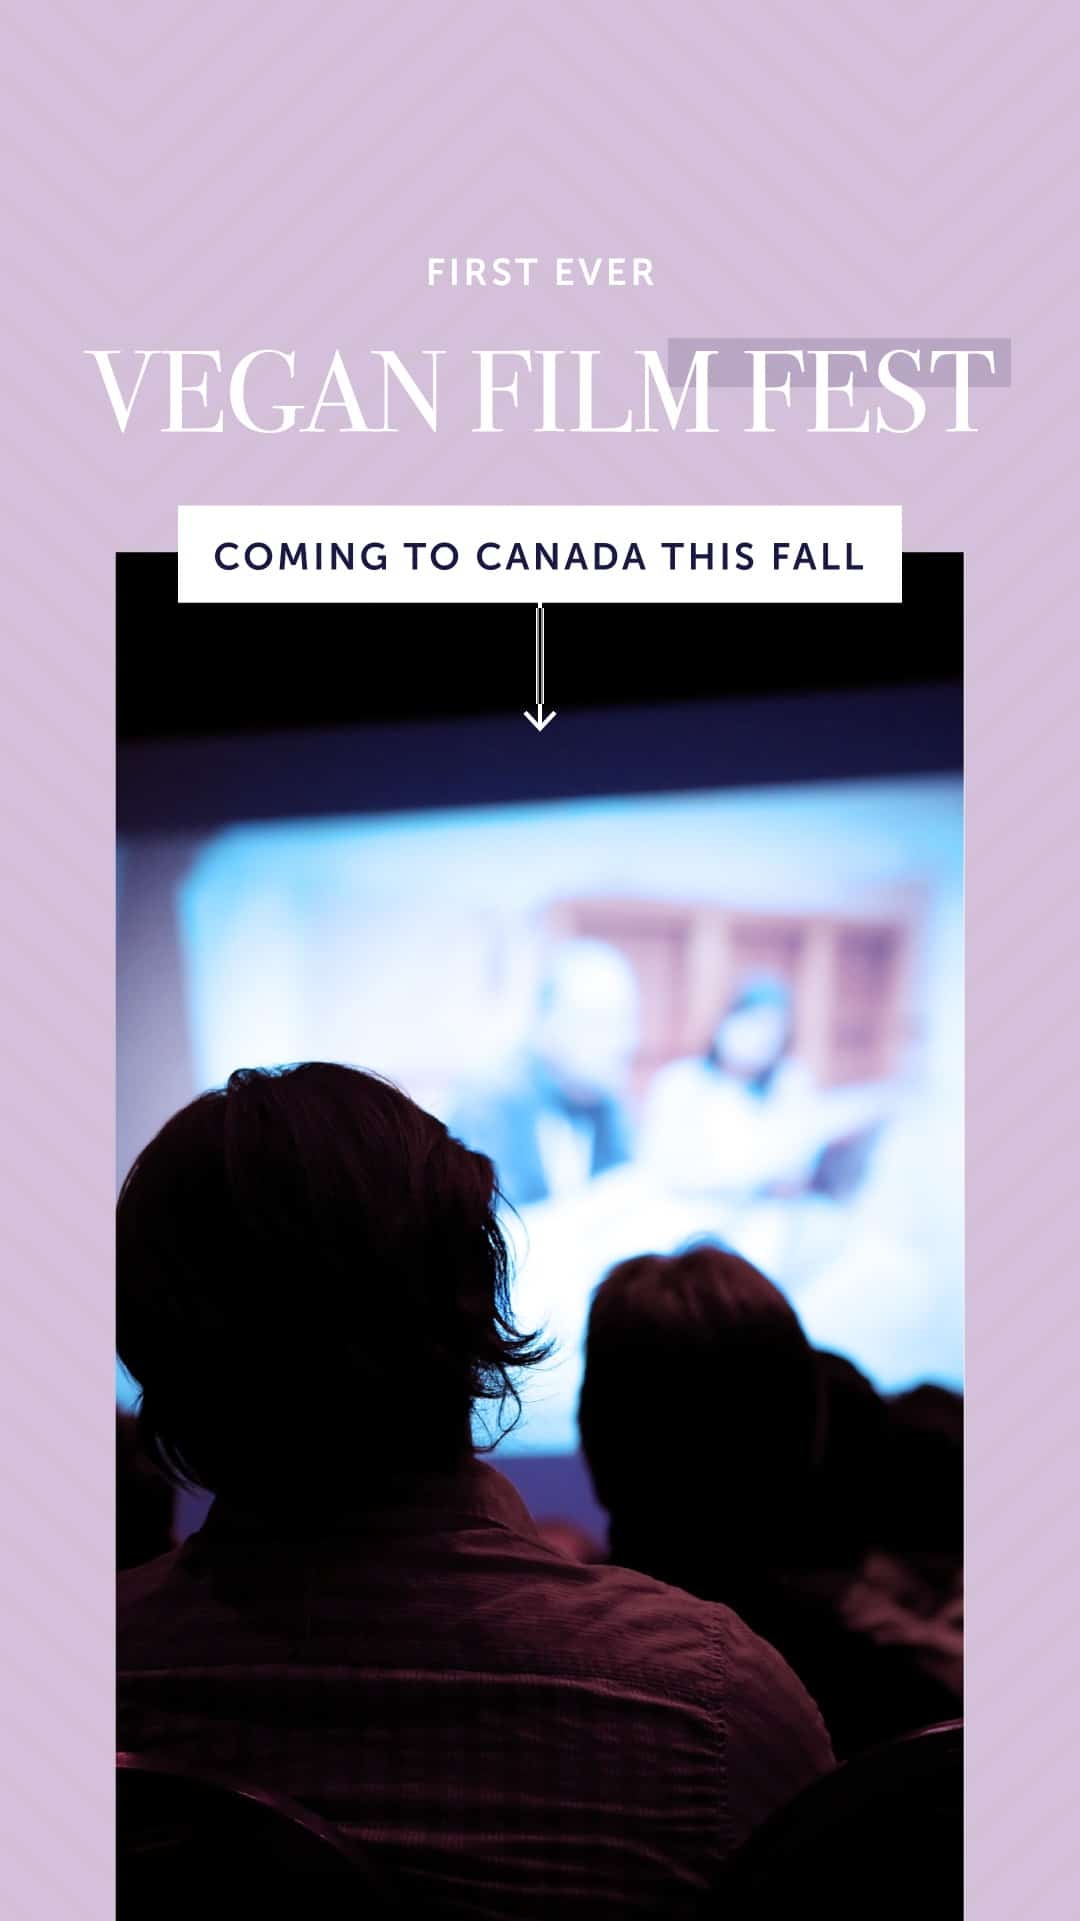 First-Ever Vegan Film Fest Is Coming to Canada This Fall